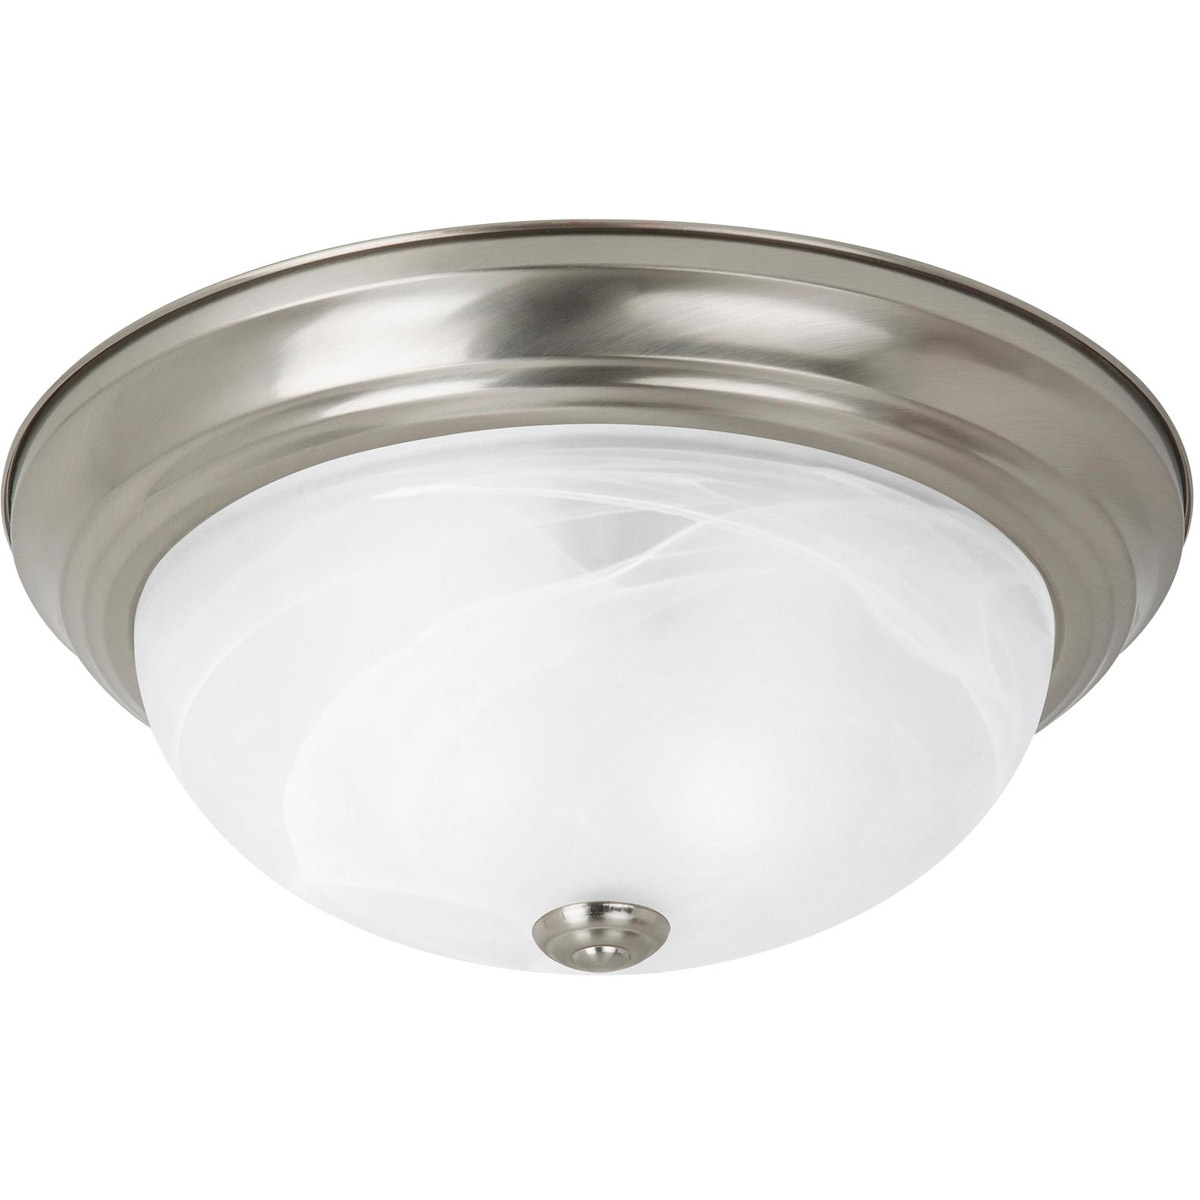 Sea Gull Lighting Windgate 1 Light Flush Mount in Brushed Nickel 75940-962